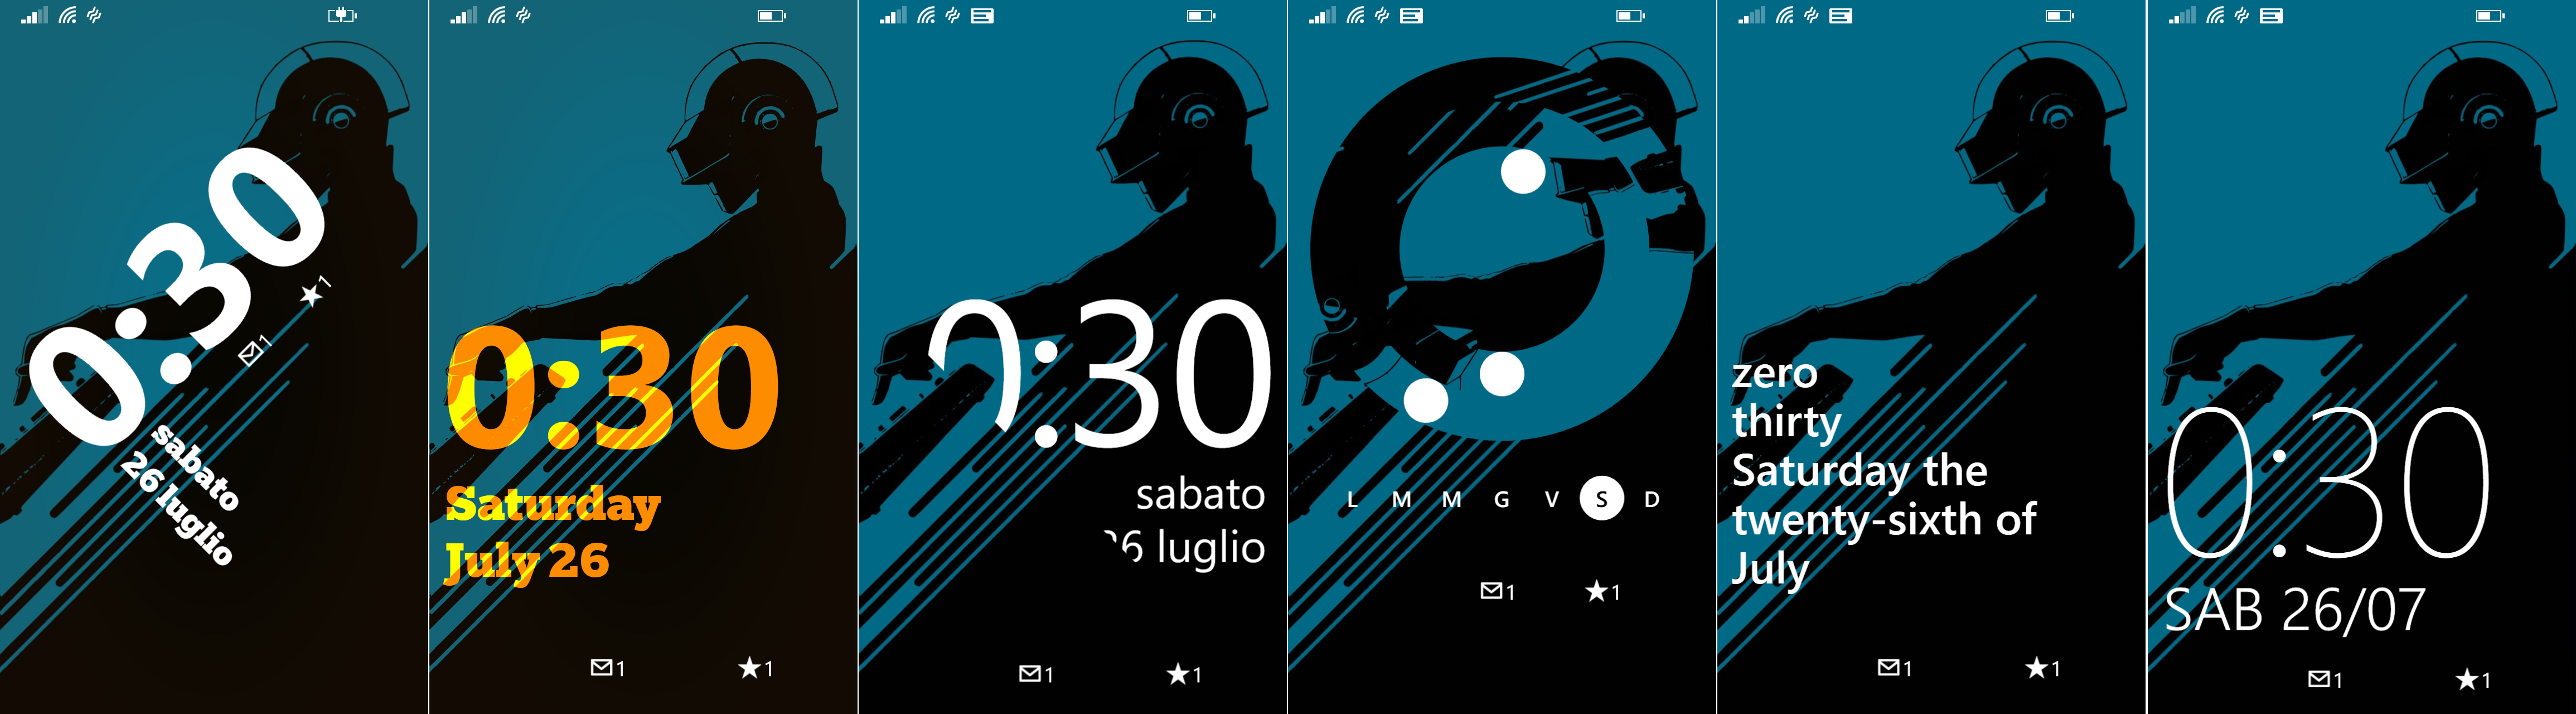 live_lockscreen_beta_WP81